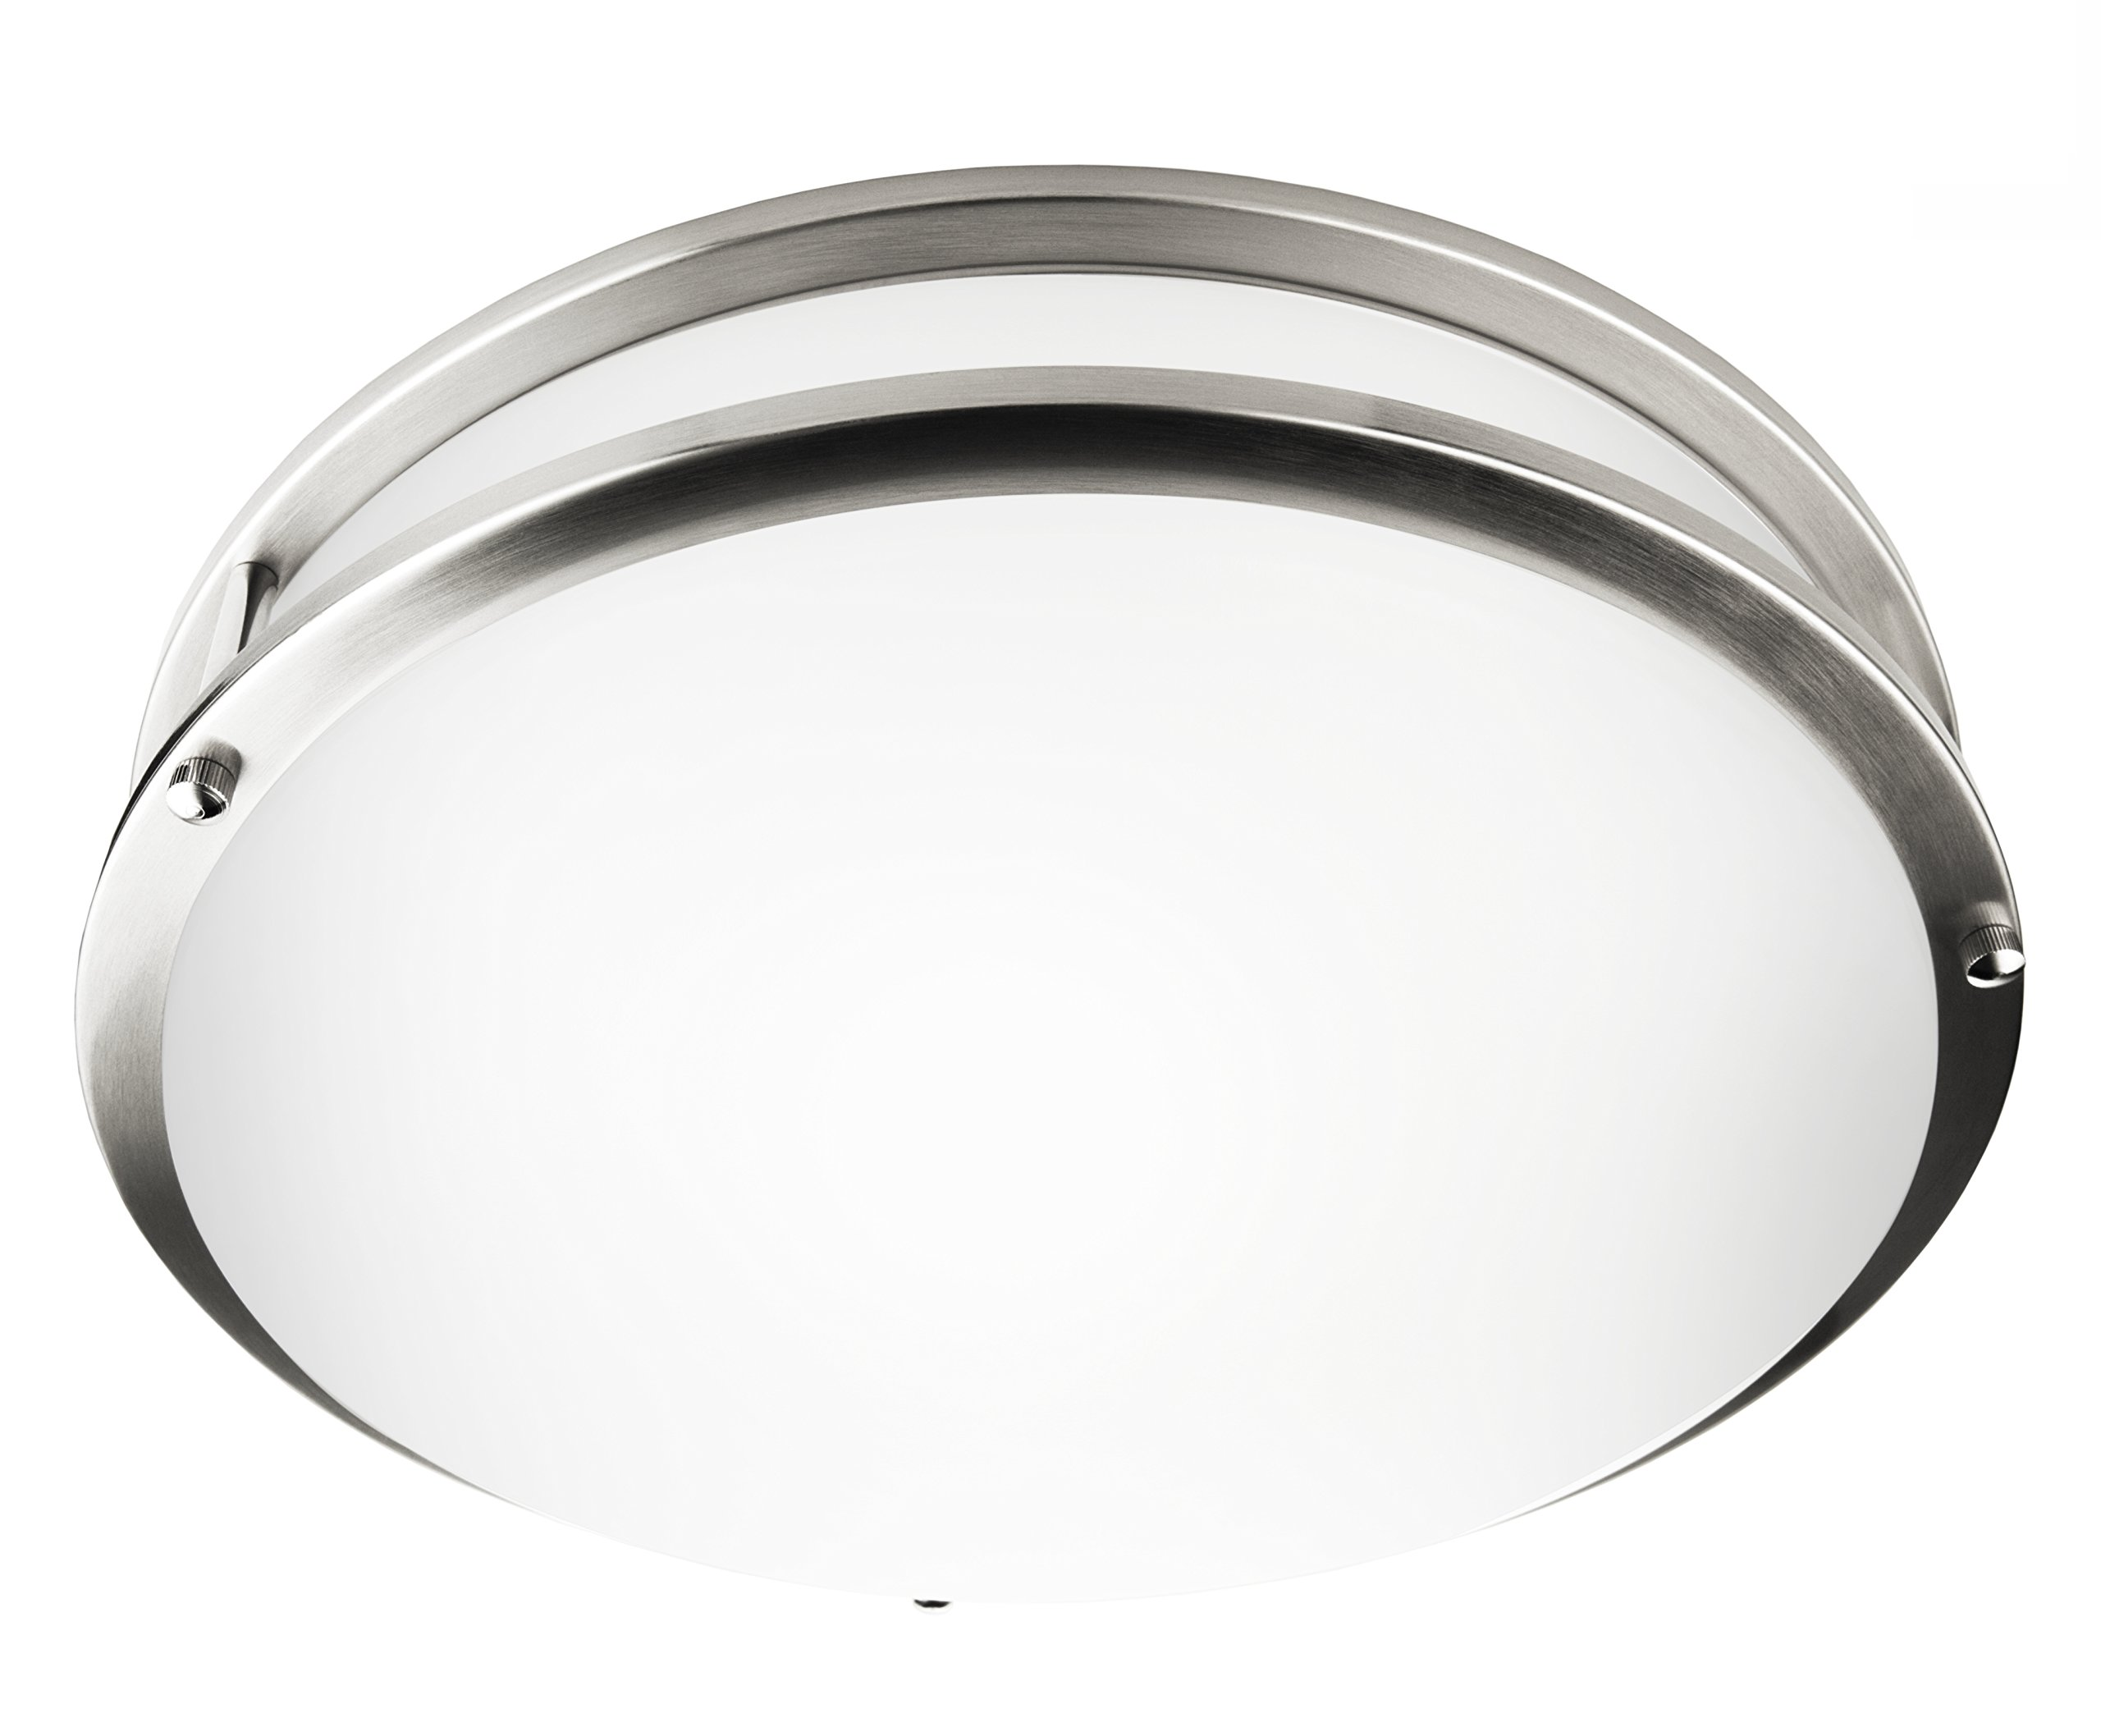 Best Rated In Ceiling Light Fixtures Helpful Customer Reviews Wiring Schematic For Cans Hyperikon Led Flush Mount 14 100w Equivalent 1950lm 3000k